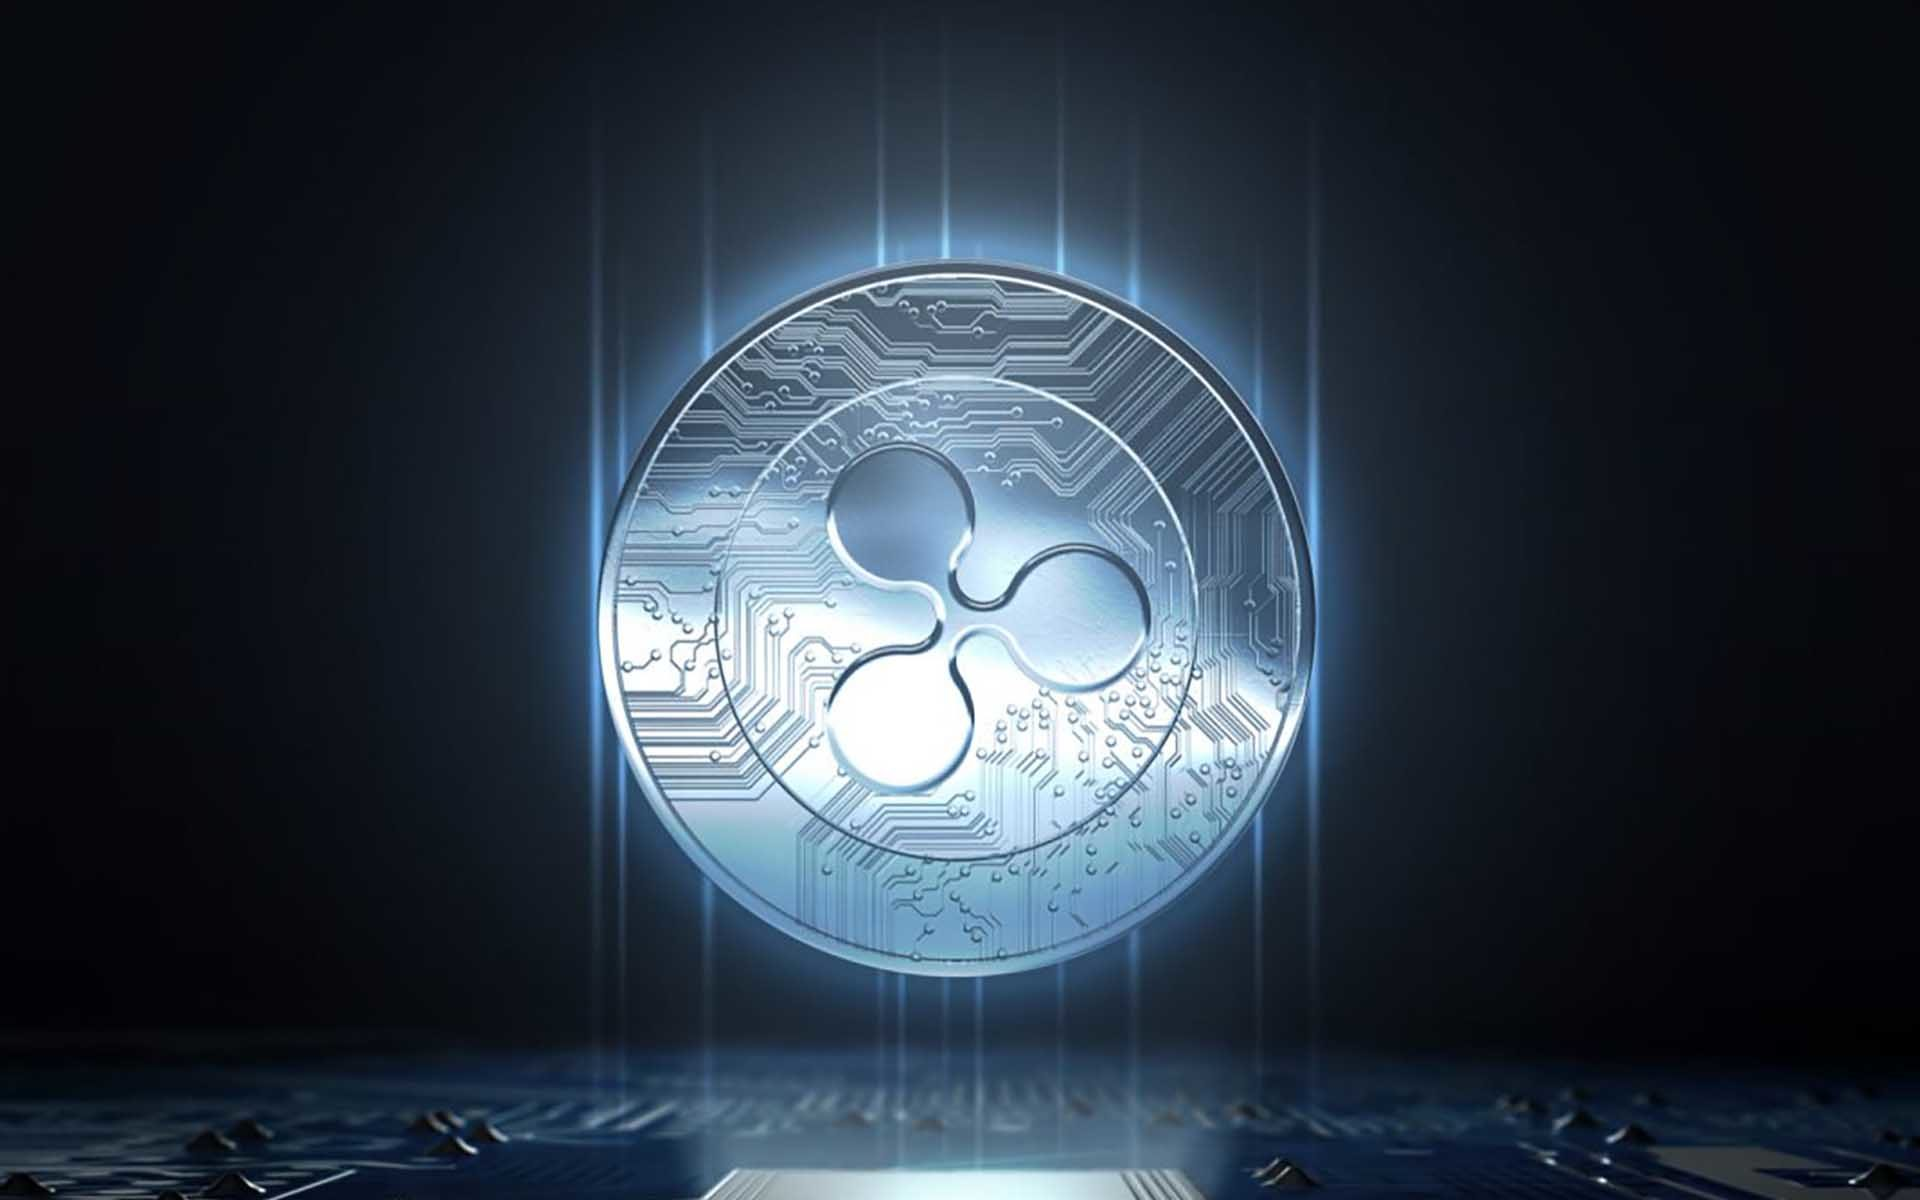 Ripple Price Prediction: XRP Must Hold Above The 50-Day SMA To Avoid Bigger Losses